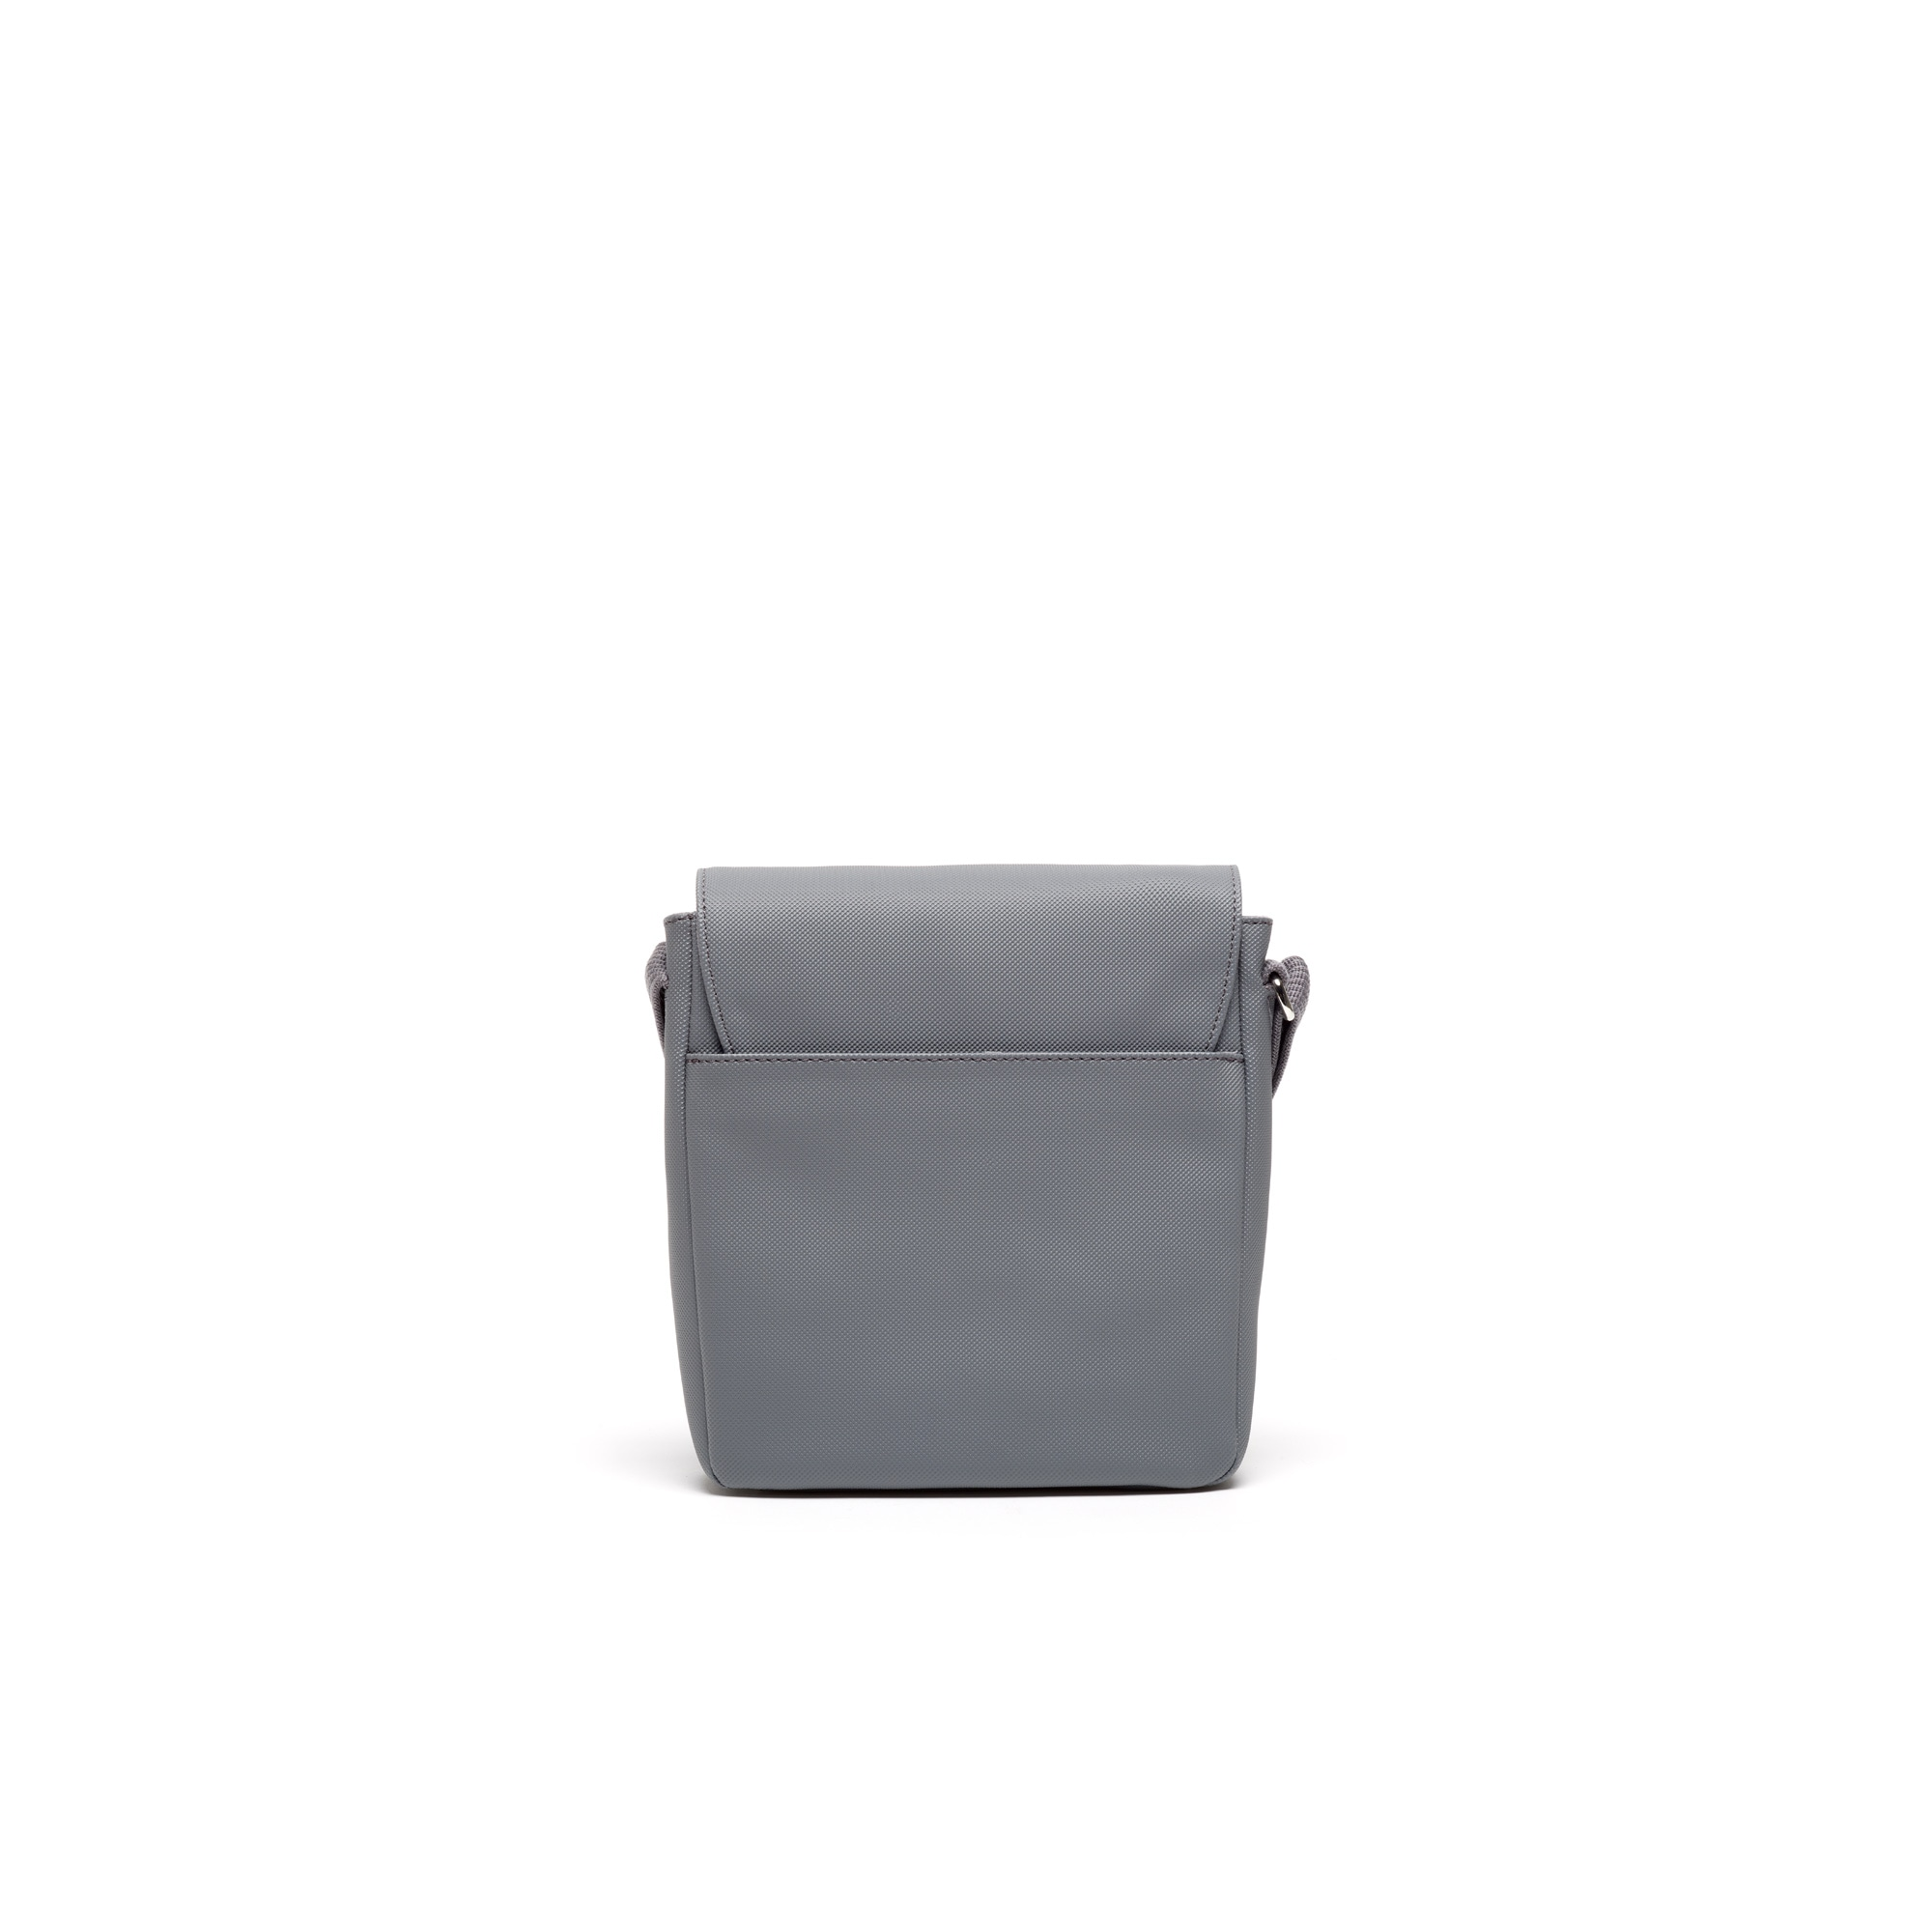 Men's classic small monochrome crossover bag